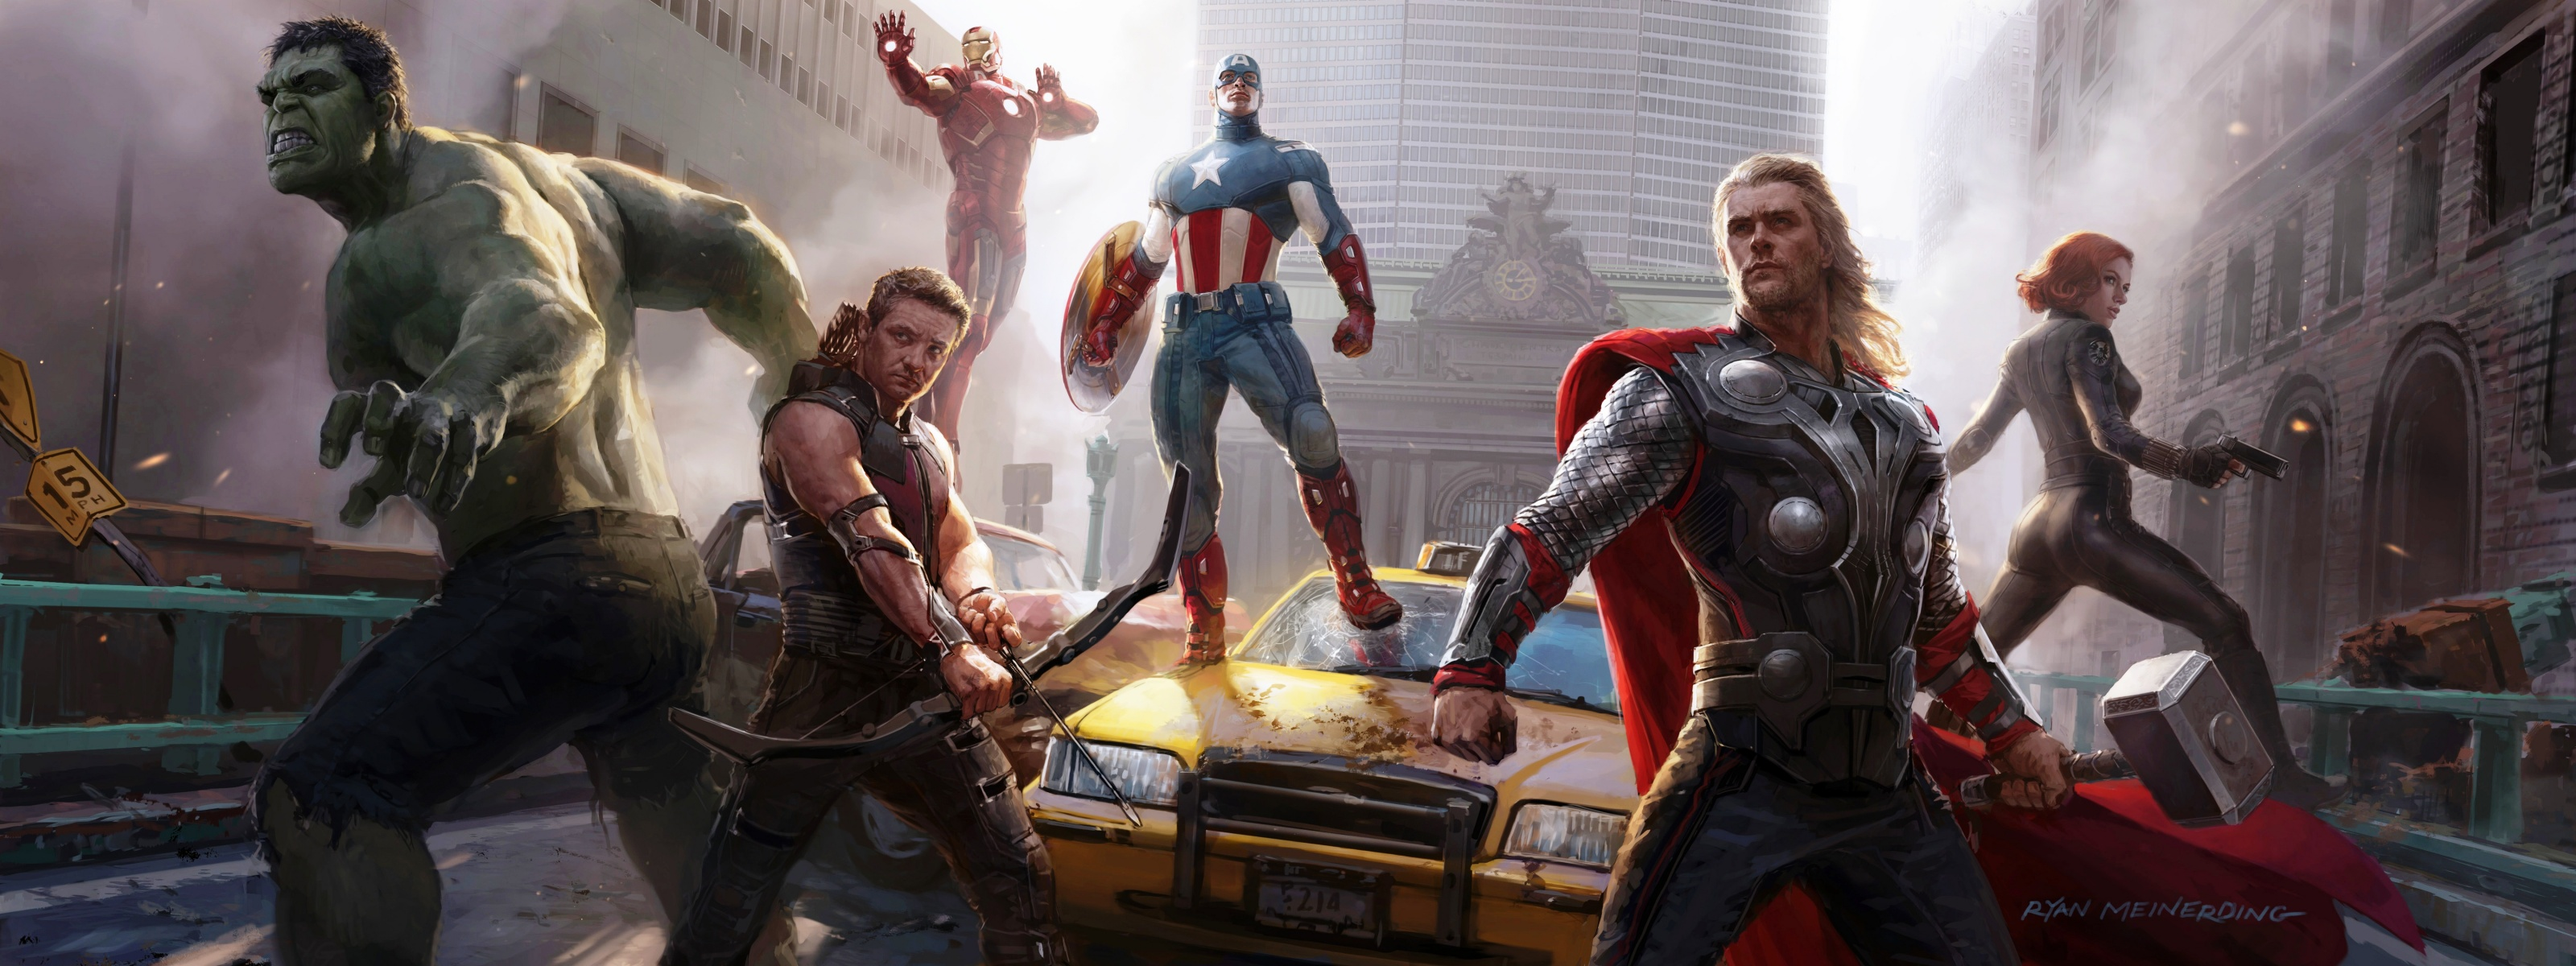 The Avengers Concept Art Wallpapers HD Wallpapers 3200x1200